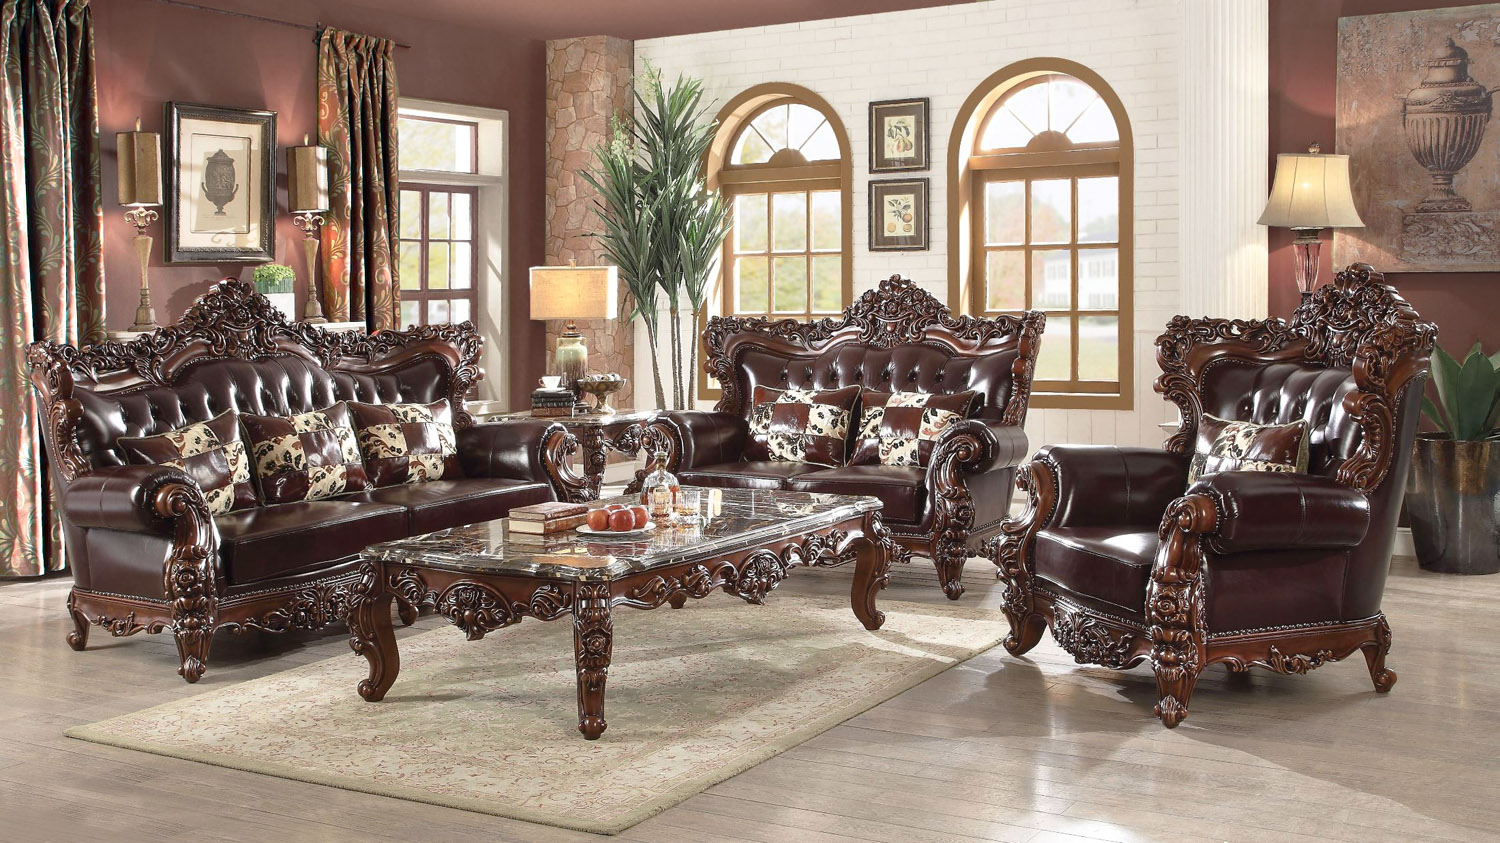 Details about Barcelona Dark Brown Tufted Traditional 2pc Leather Sofa Set  With Winged Back